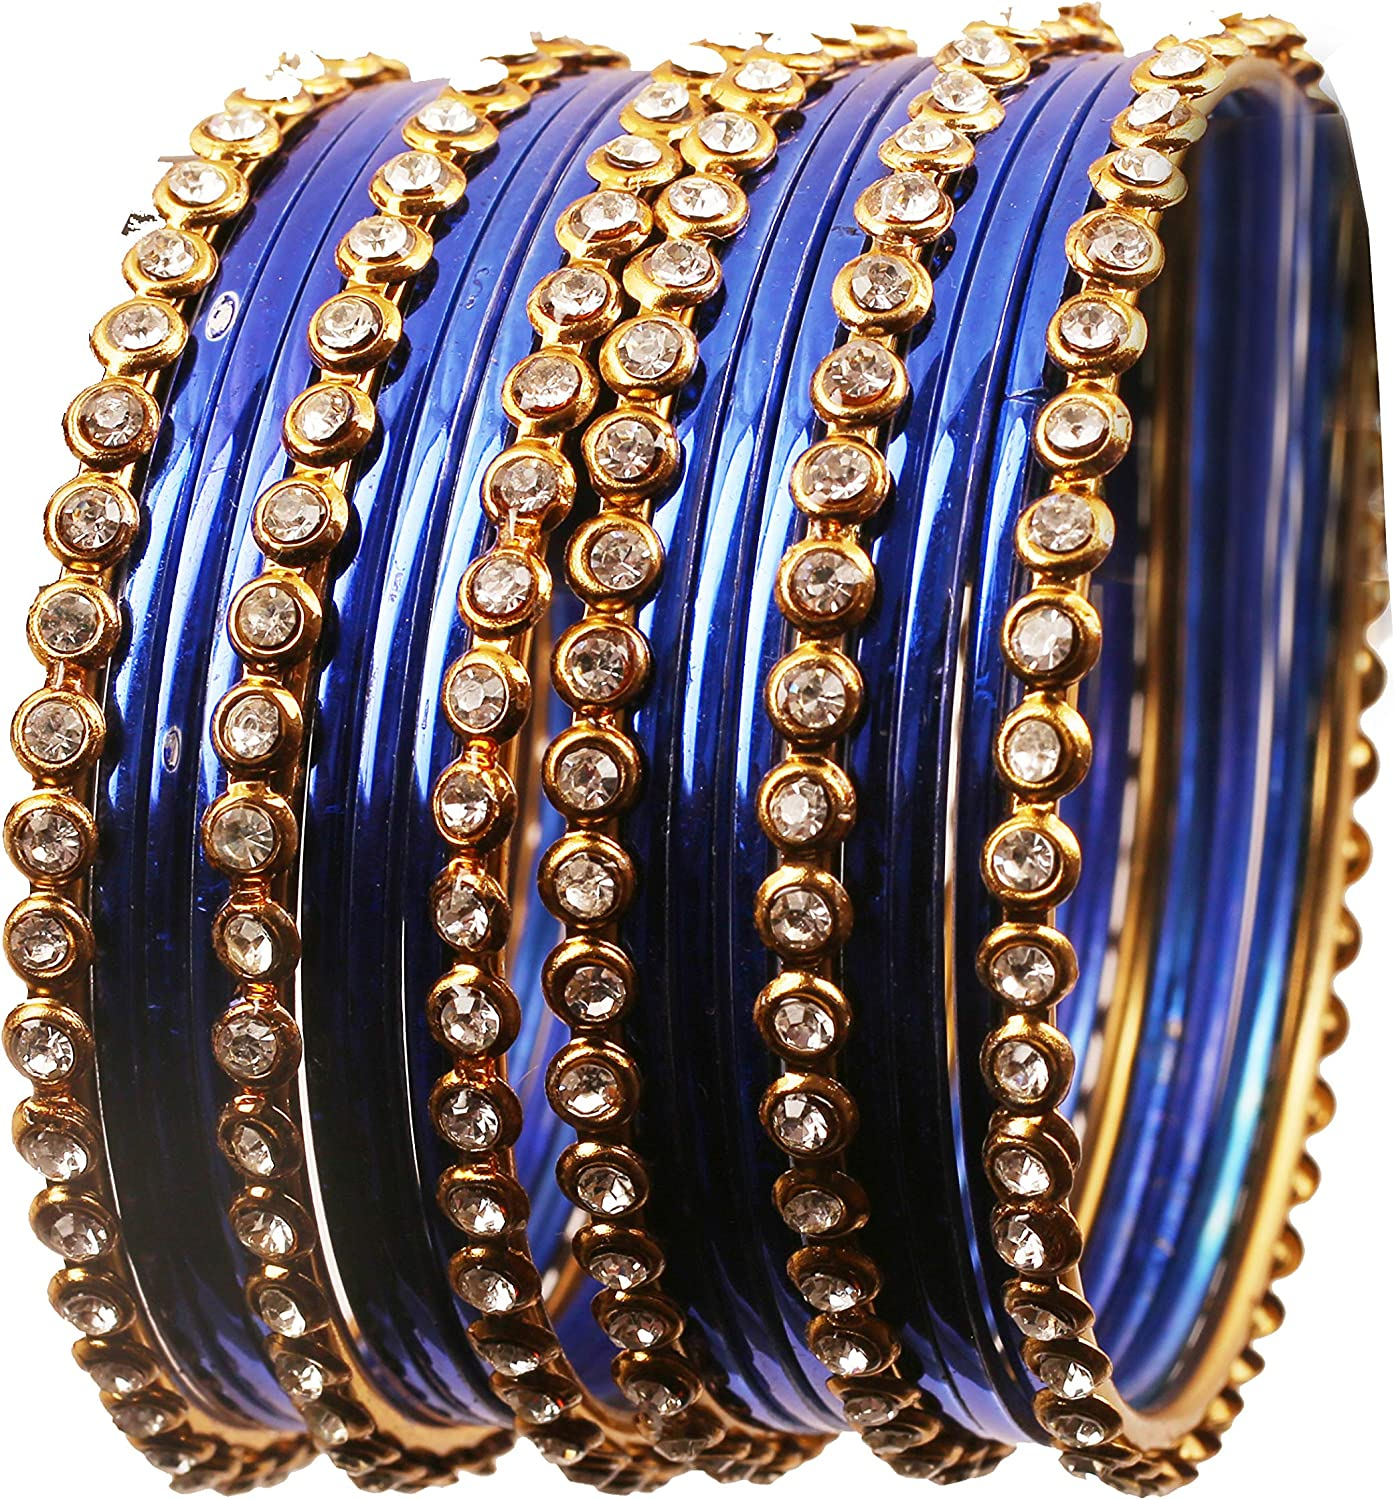 Touchstone Indian Bollywood Gorgeous Golden Flakes Sparkling Rhinestone Vintage Textured Glossy Color Charming Designer Jewelry Bangle Bracelets For Women.